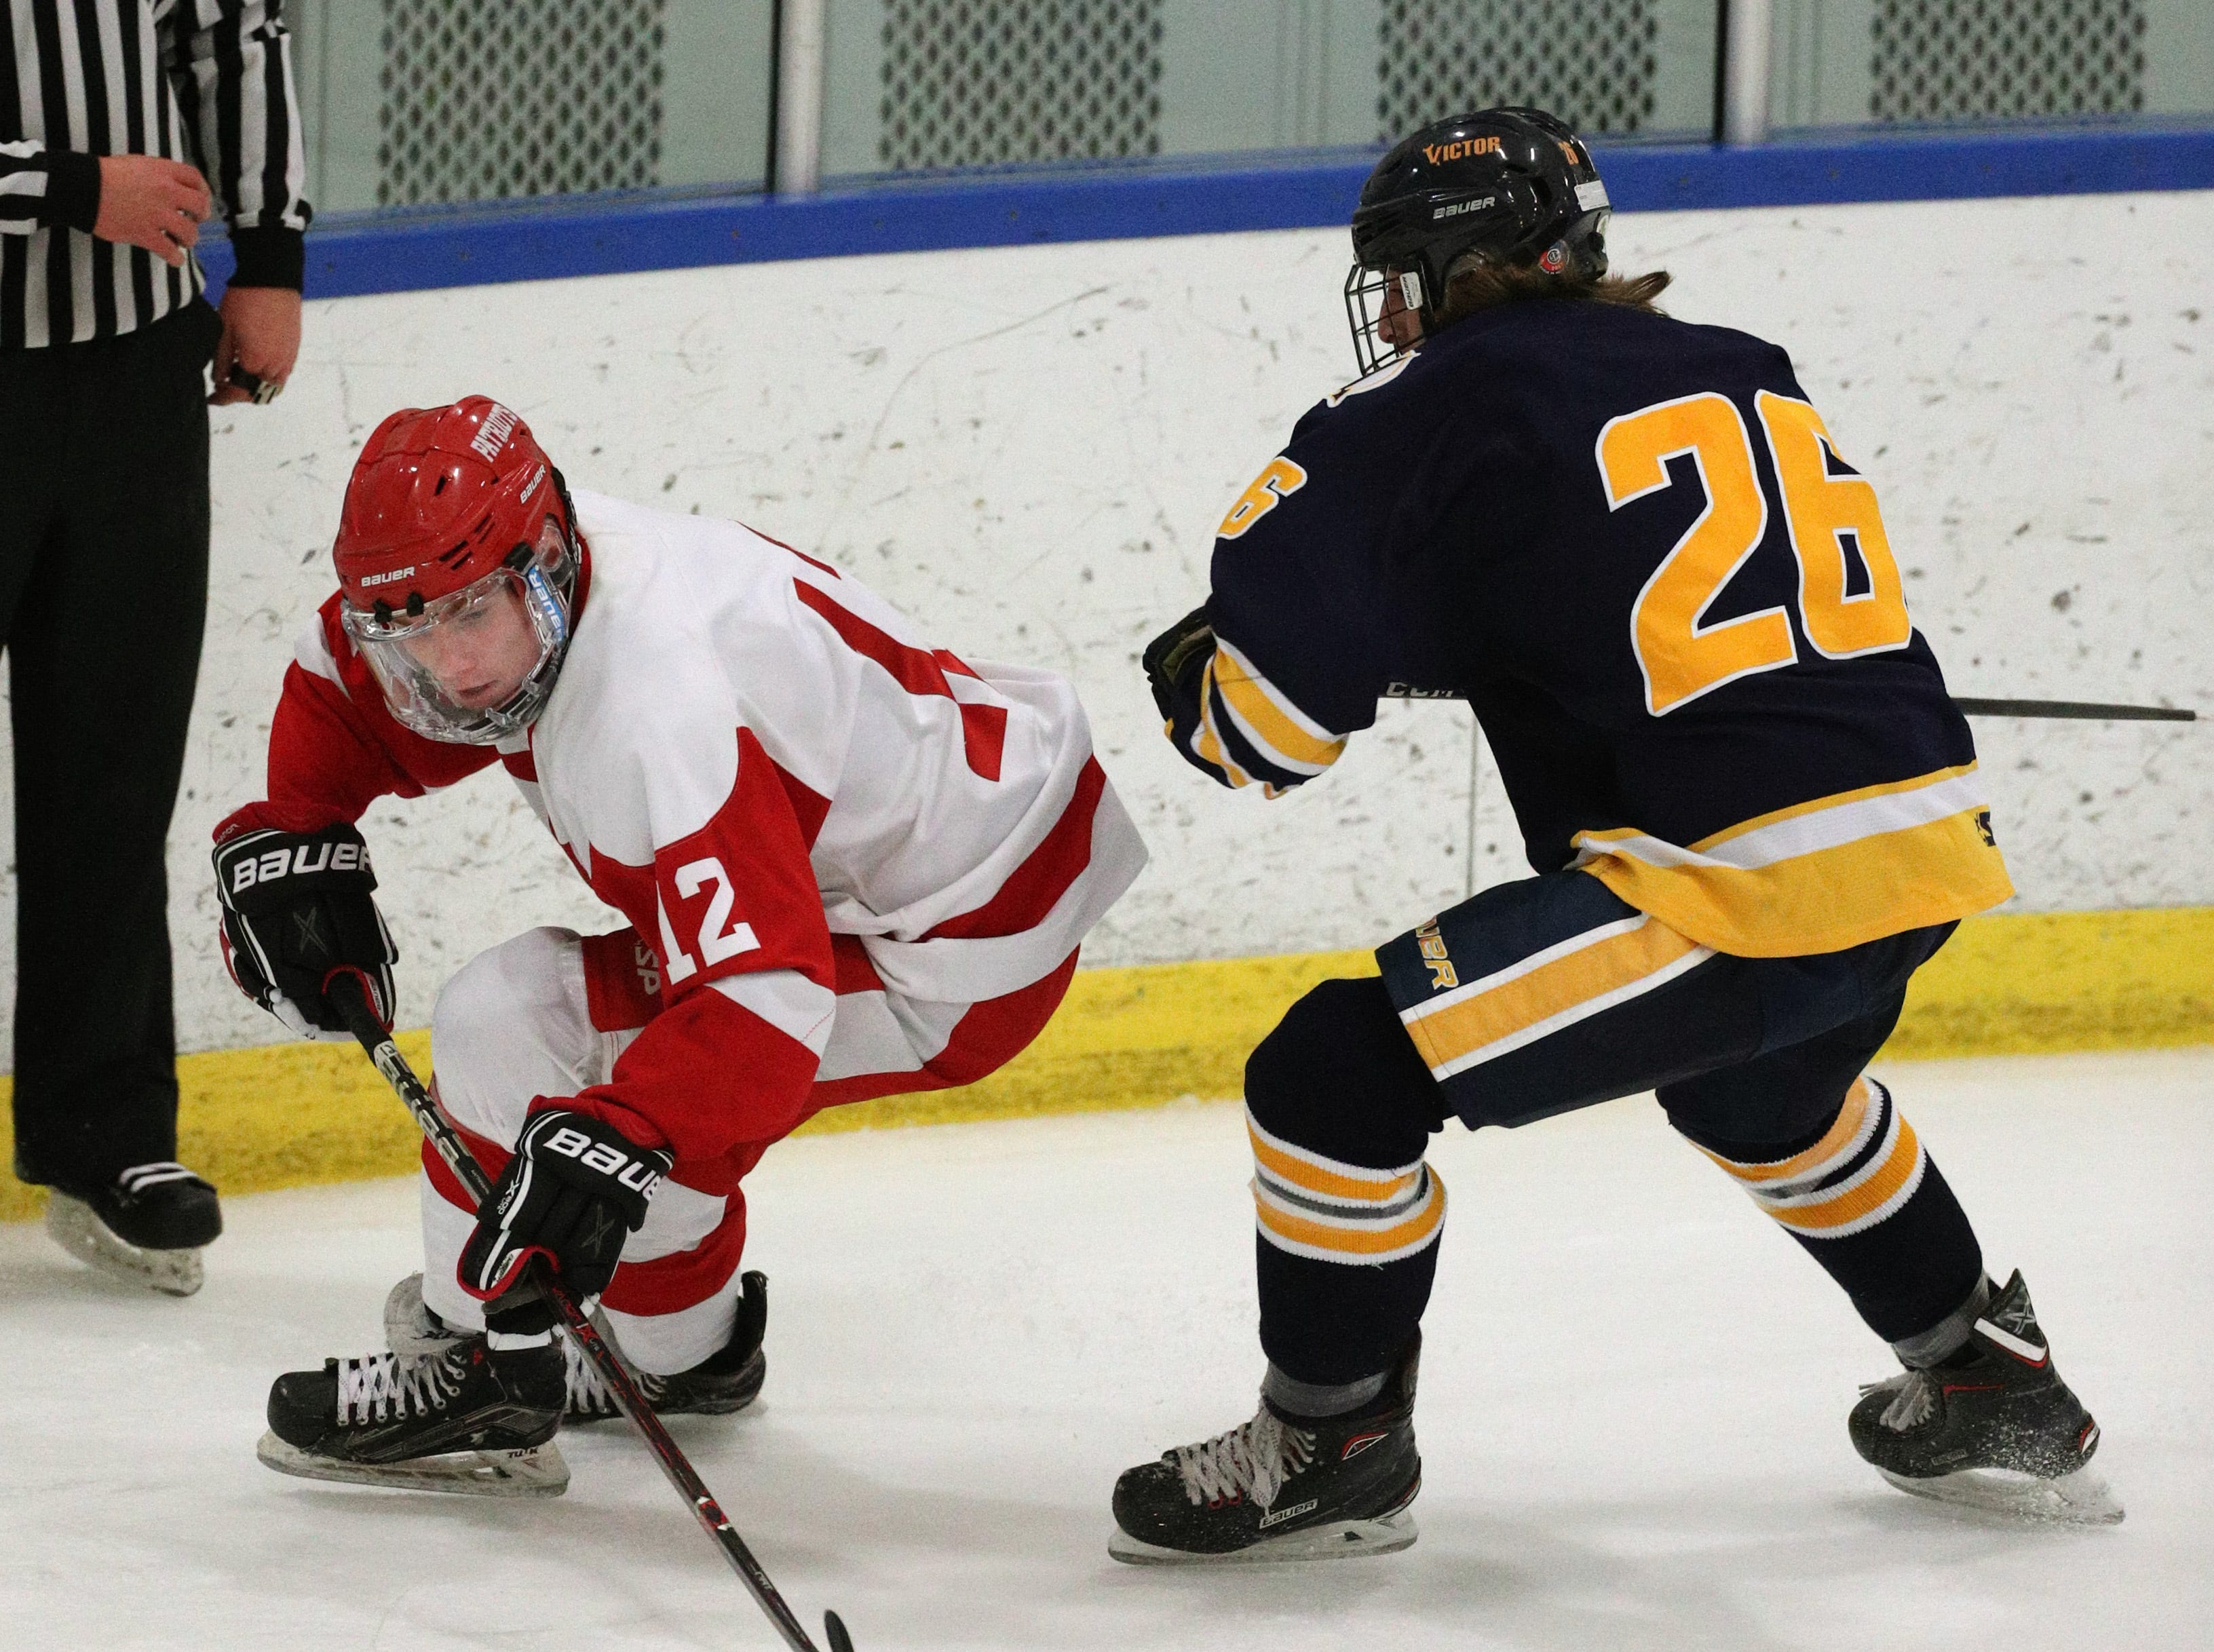 Penfield's Nathan Sobko (12) skates around Victor's James Tilley.